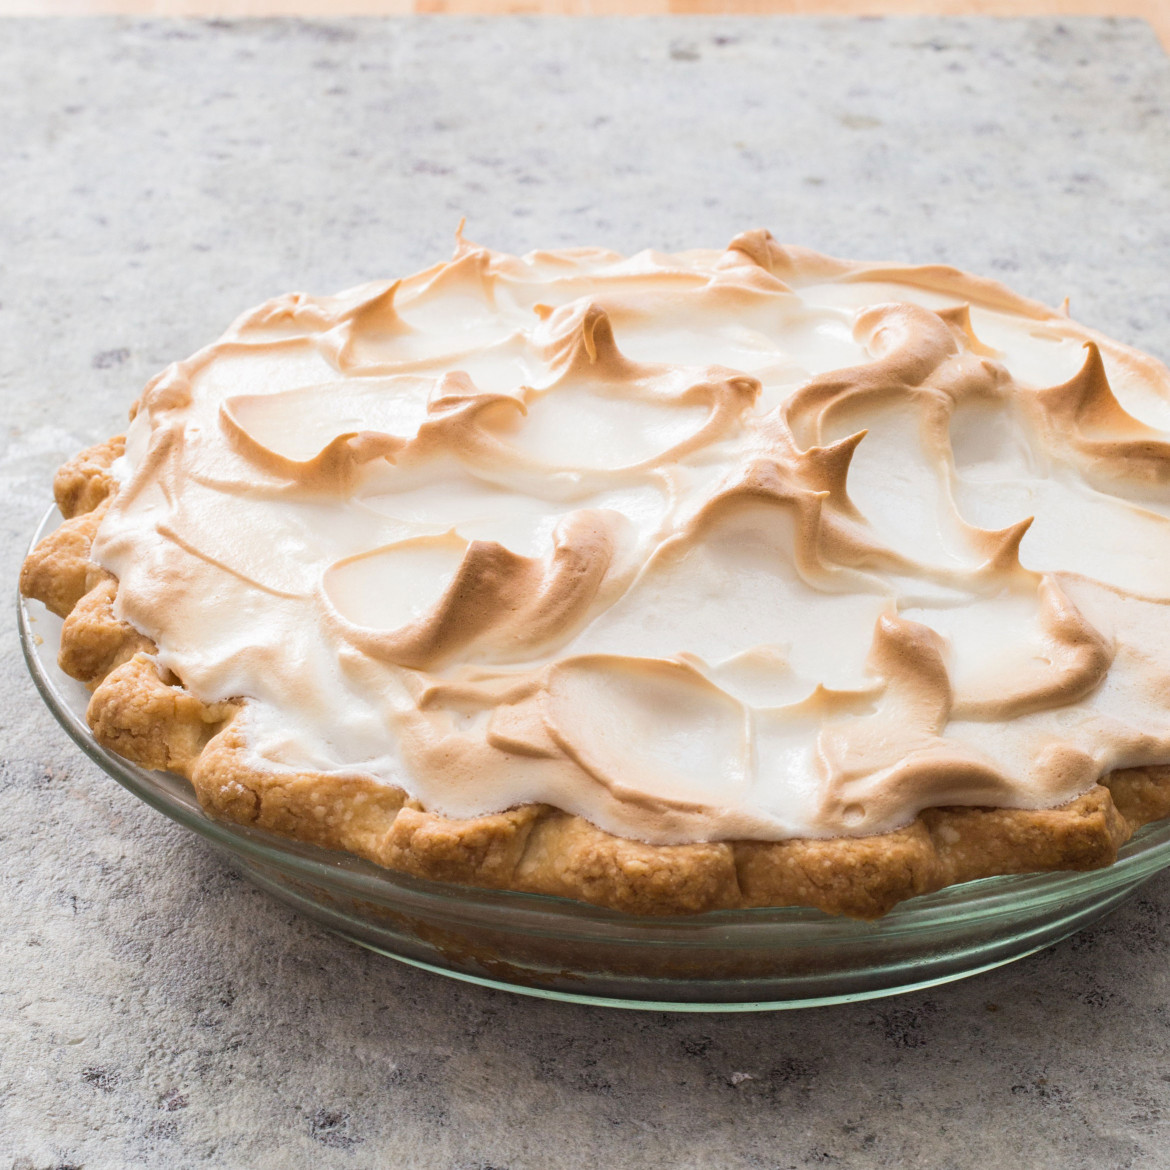 Lemon Meringue Pie  Gluten Free Lemon Meringue Pie